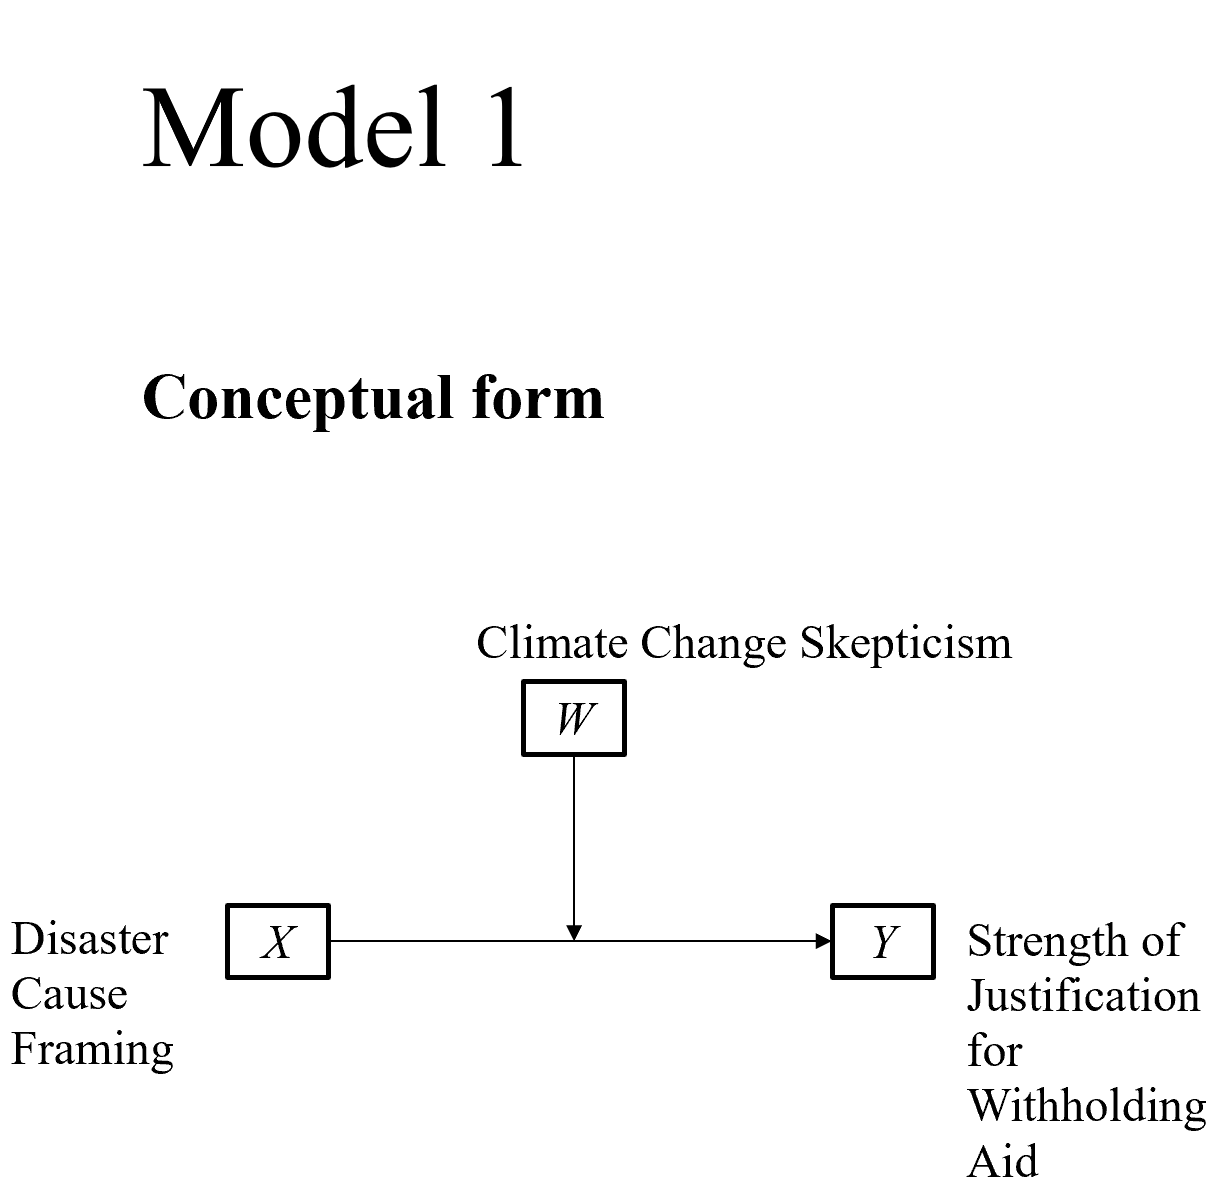 PRODUCT V3 Model 1 Moderation (dich IV on x-axis - cont W in legend)